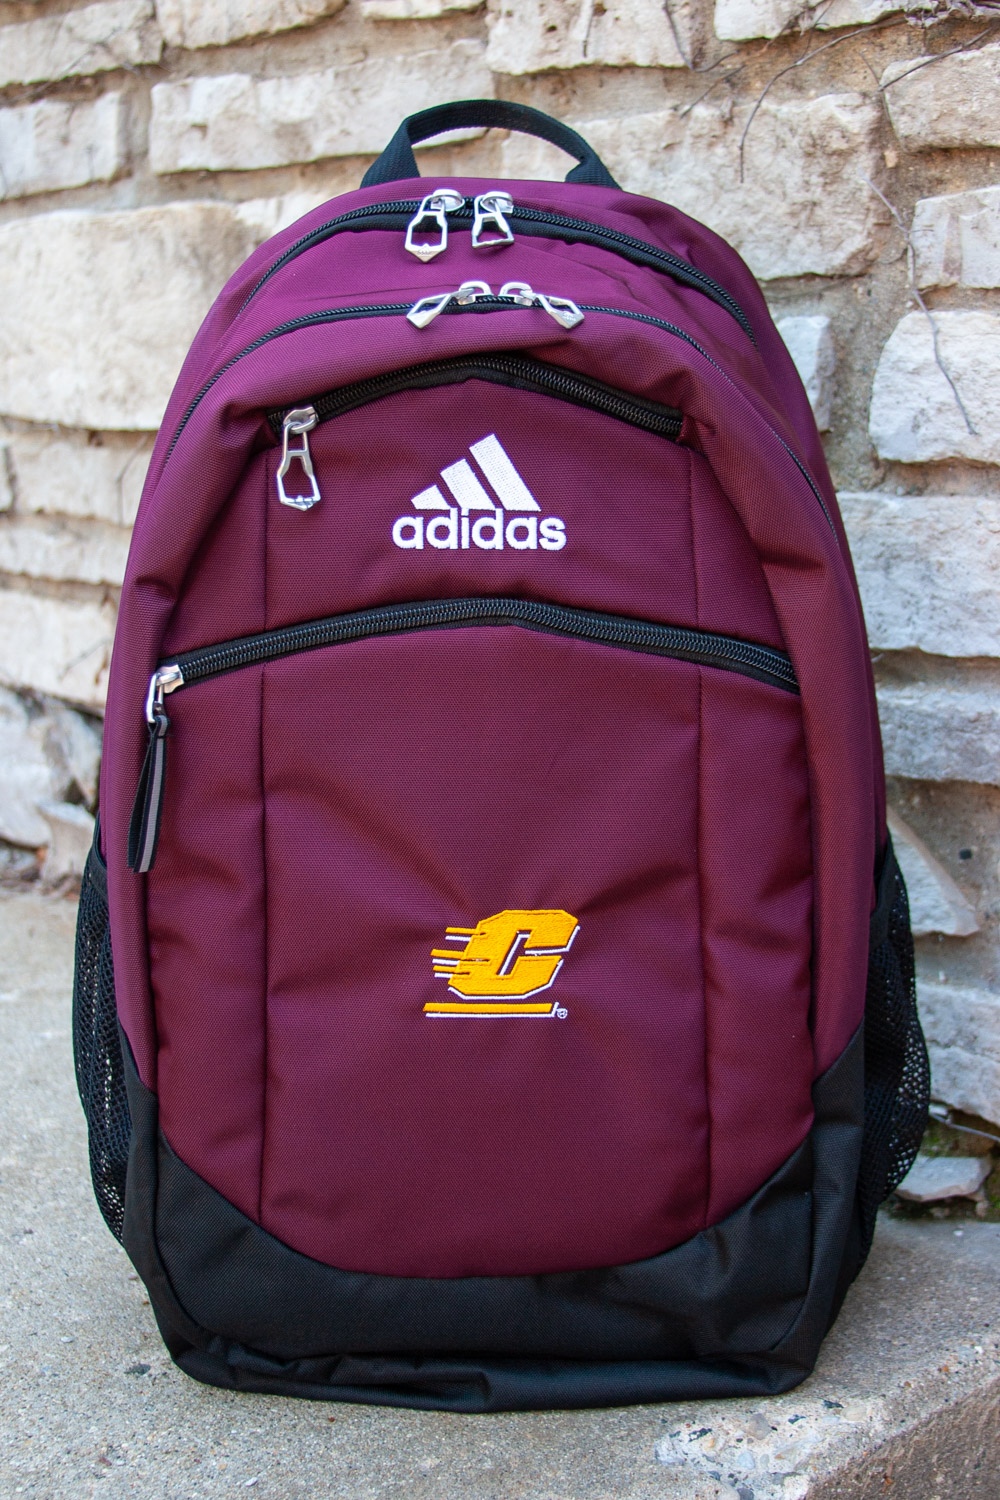 Adidas Striker Maroon Flying C Backpack (SKU 5044199070)